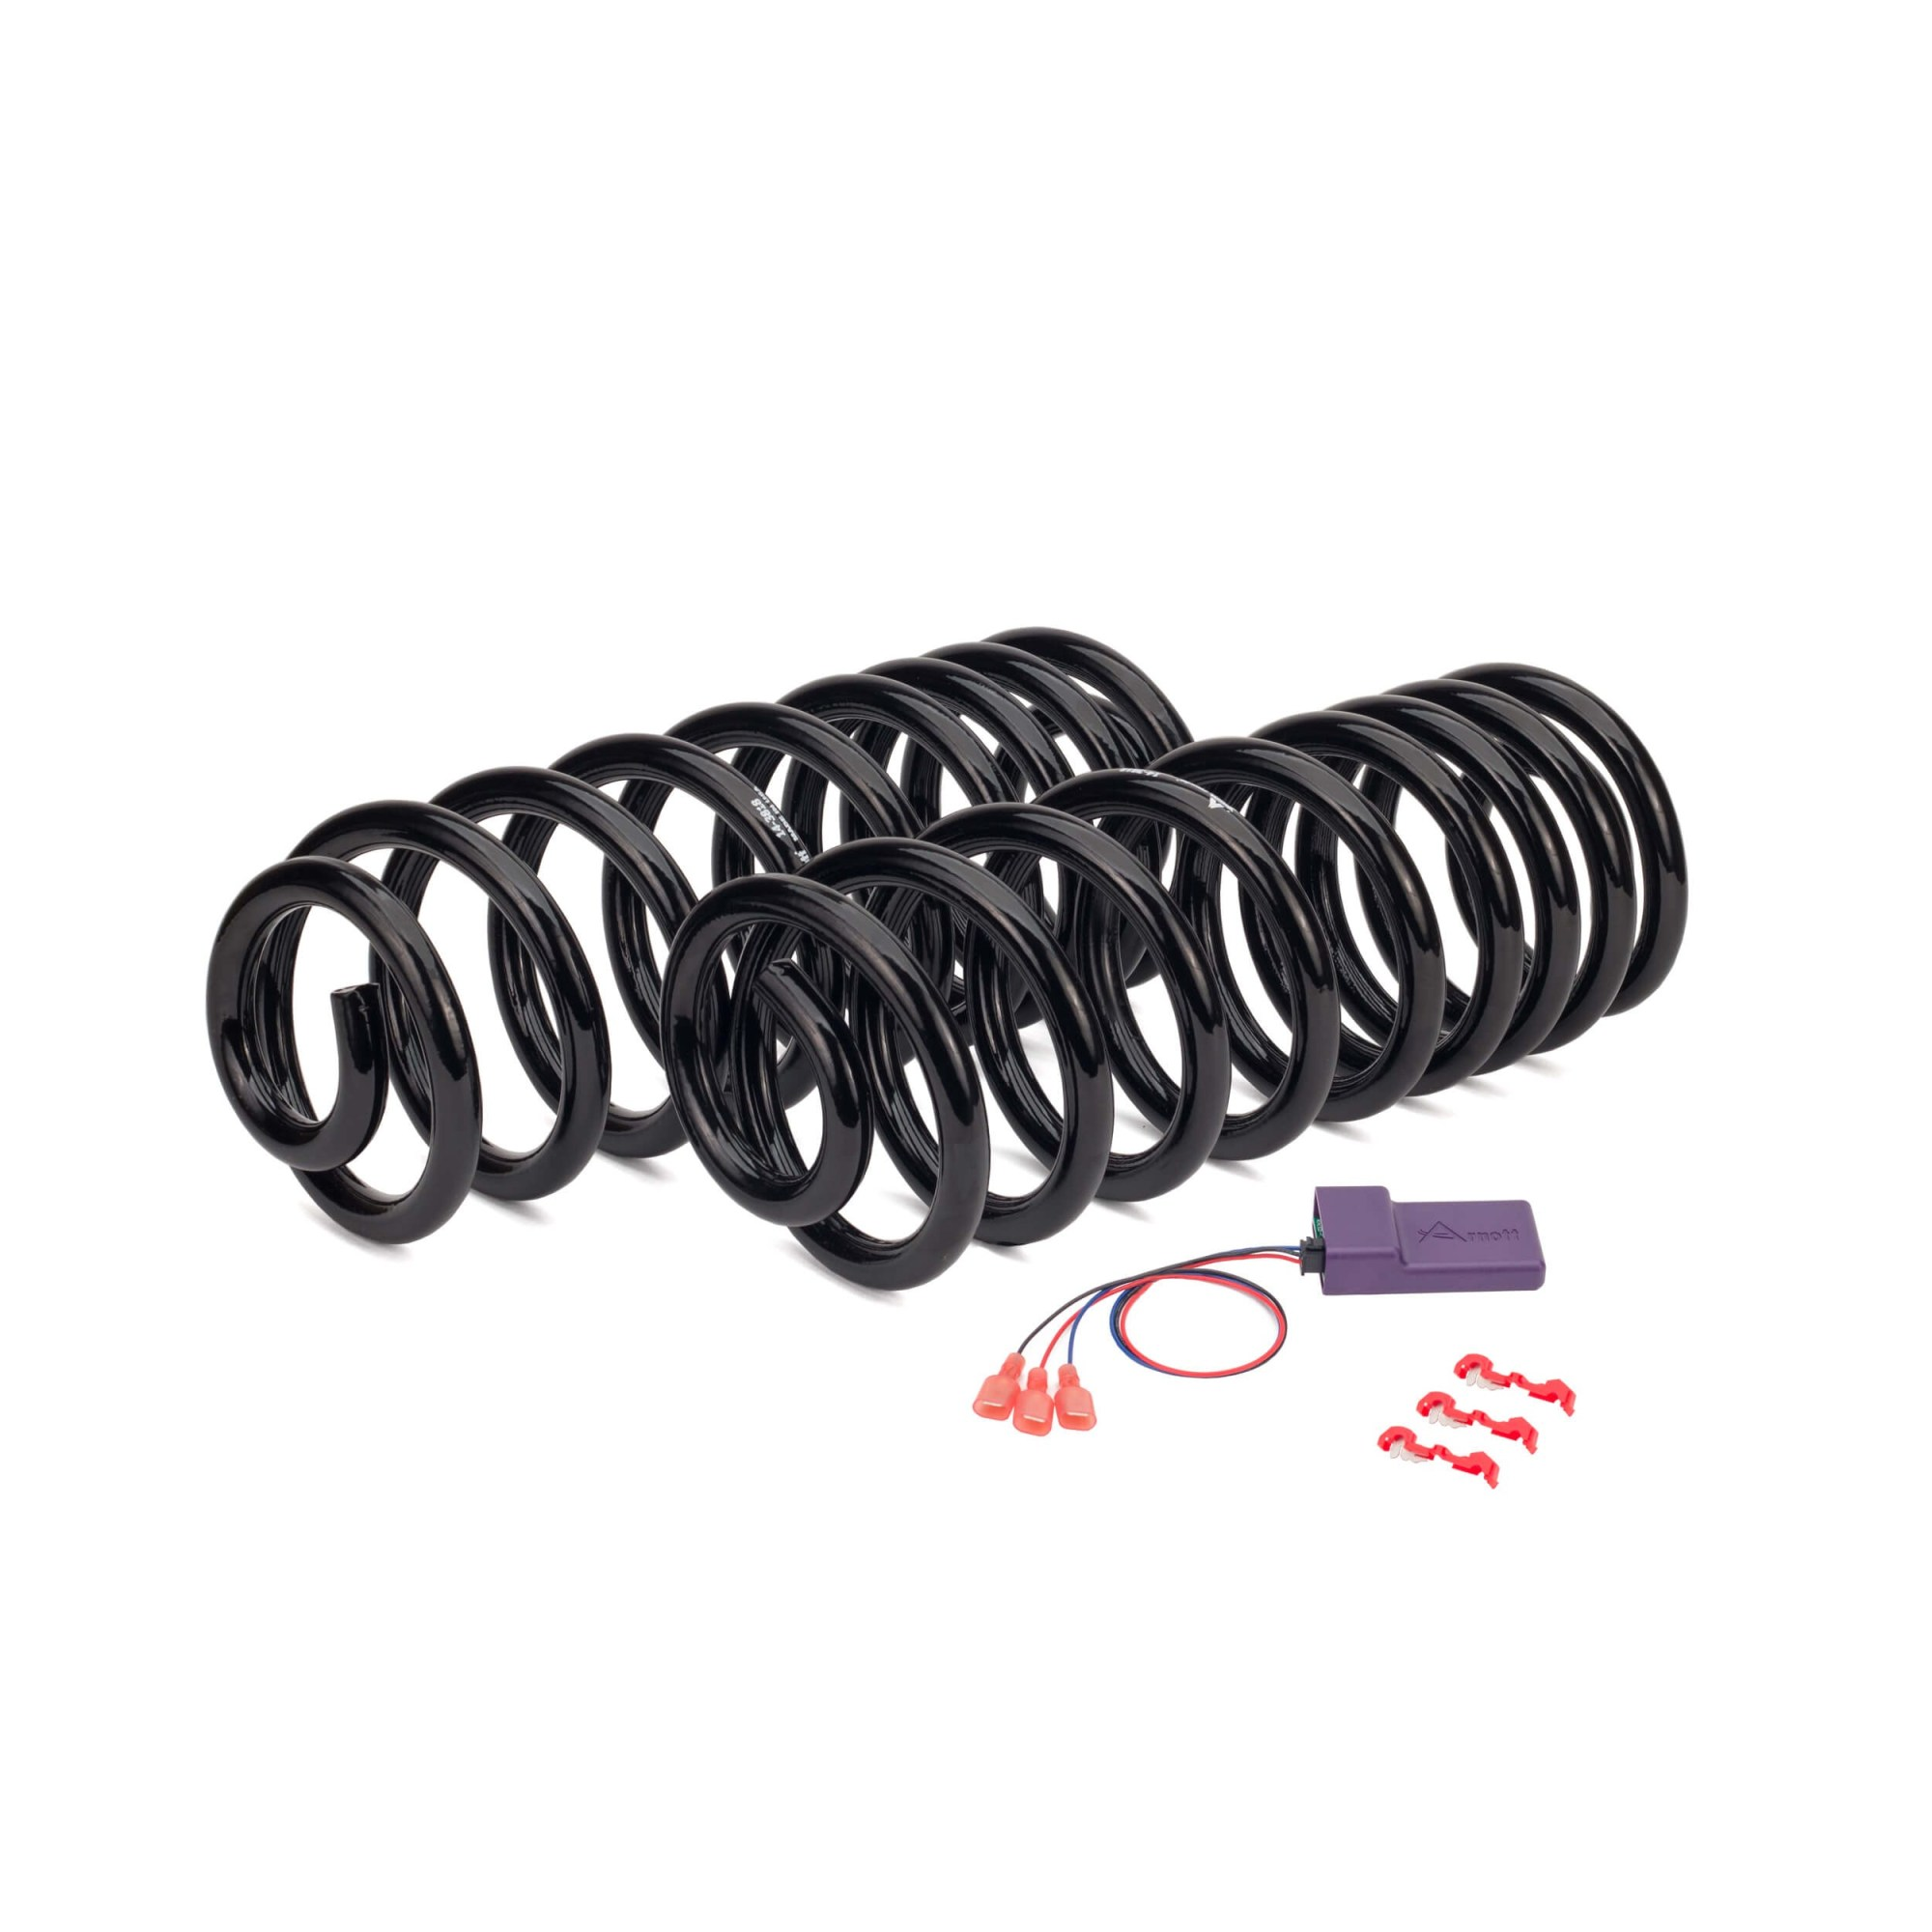 hight resolution of arnott new rear coil spring conversion kit w ebm 03 07 hummer h2 gmt 820 left or right